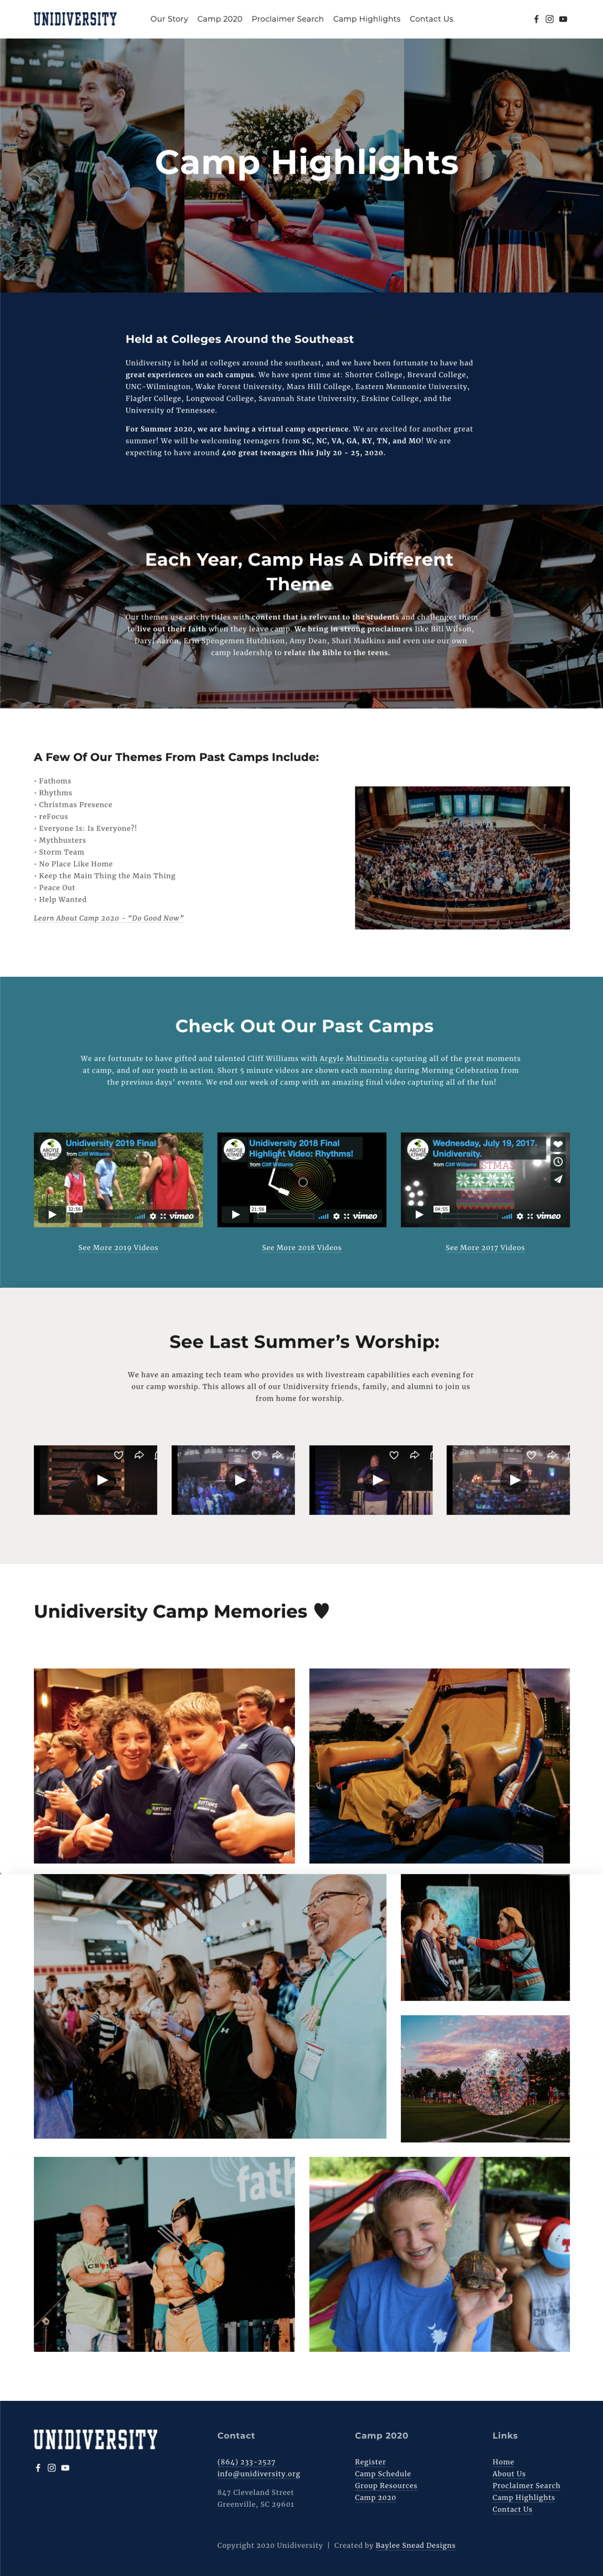 Website wireframe for a Christian youth camp. Colorful website design. Website design in Squarespace. Camp Highlights page. Features light blue, navy blue, and teal color palette. Features image gallery. #websitedesign #squarespace #websitewireframe